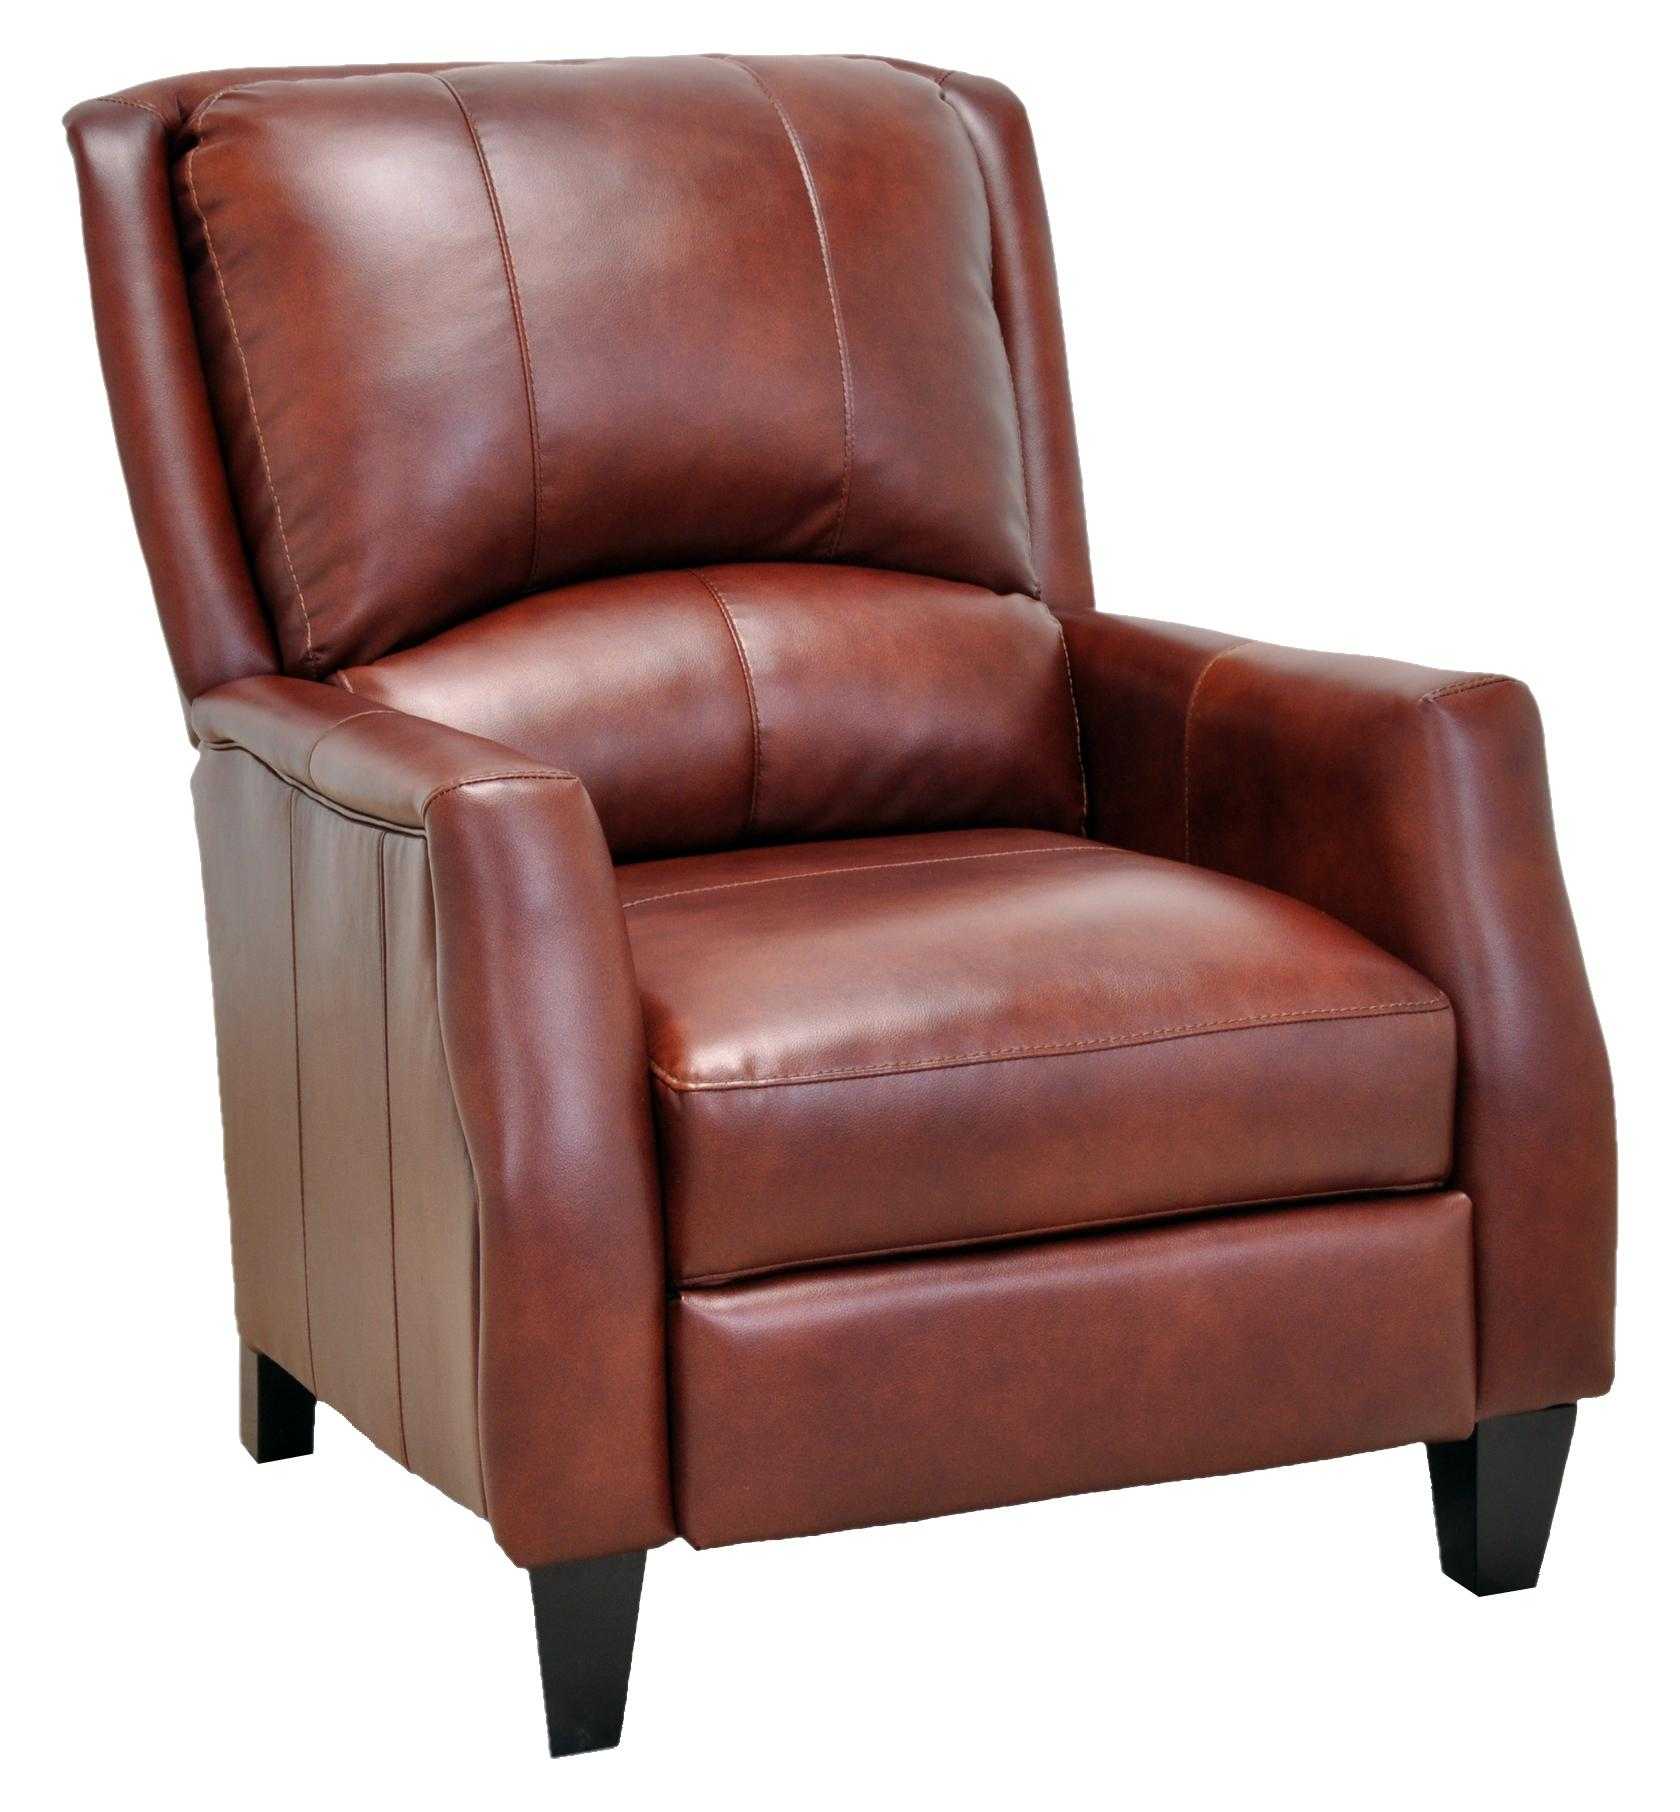 Push Back Chair Franklin Franklin Recliners Cosmo Push Back Recliner With